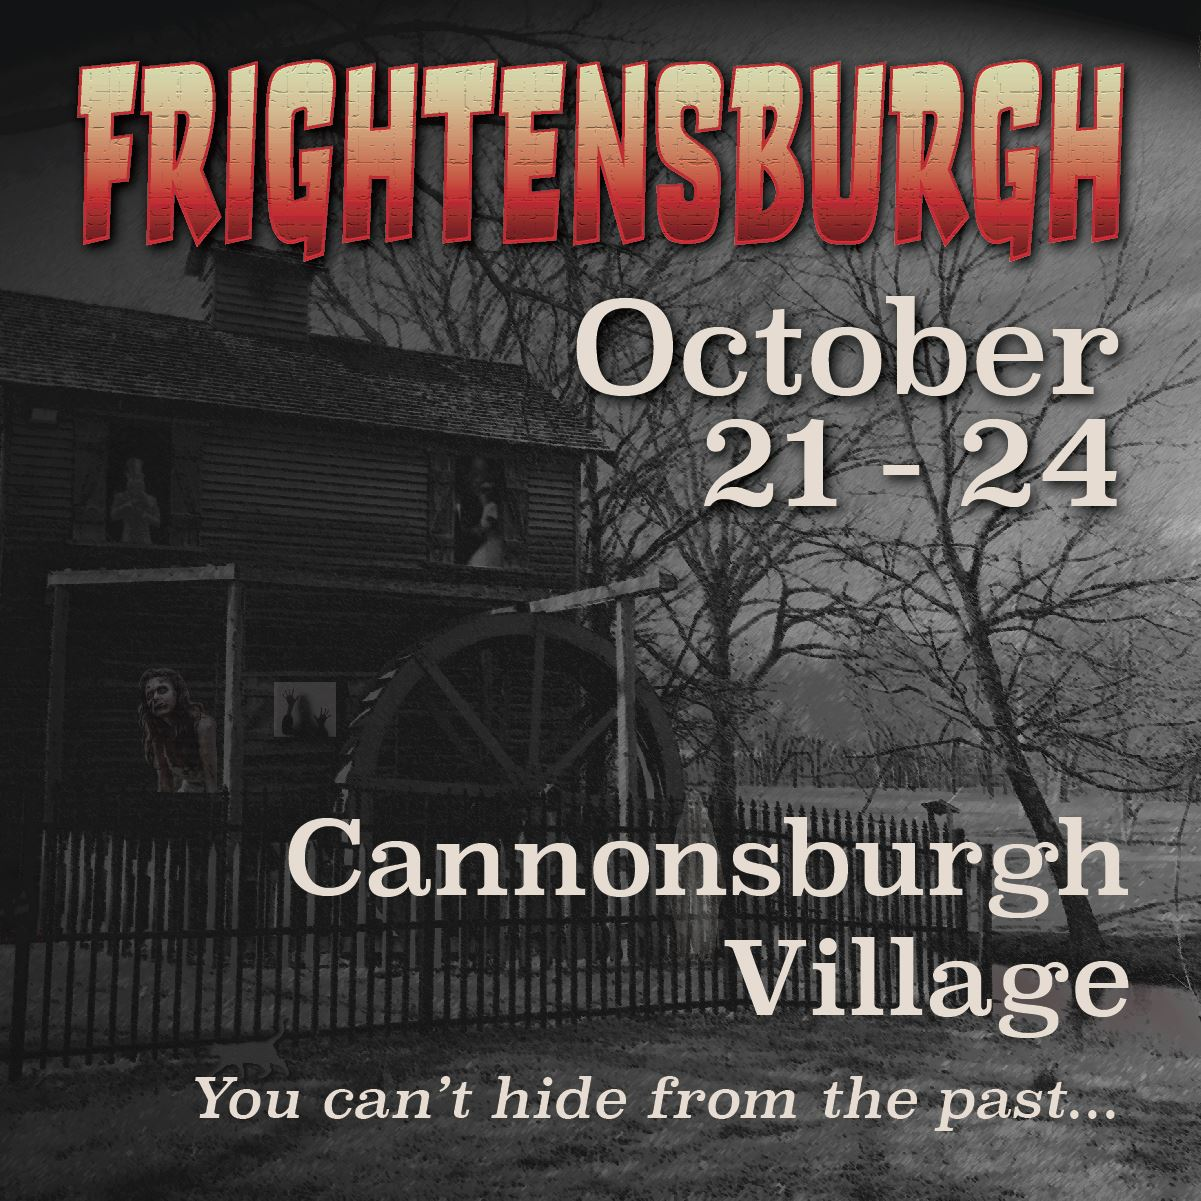 Frightensburgh at Cannonsburgh Village October 21 to 24